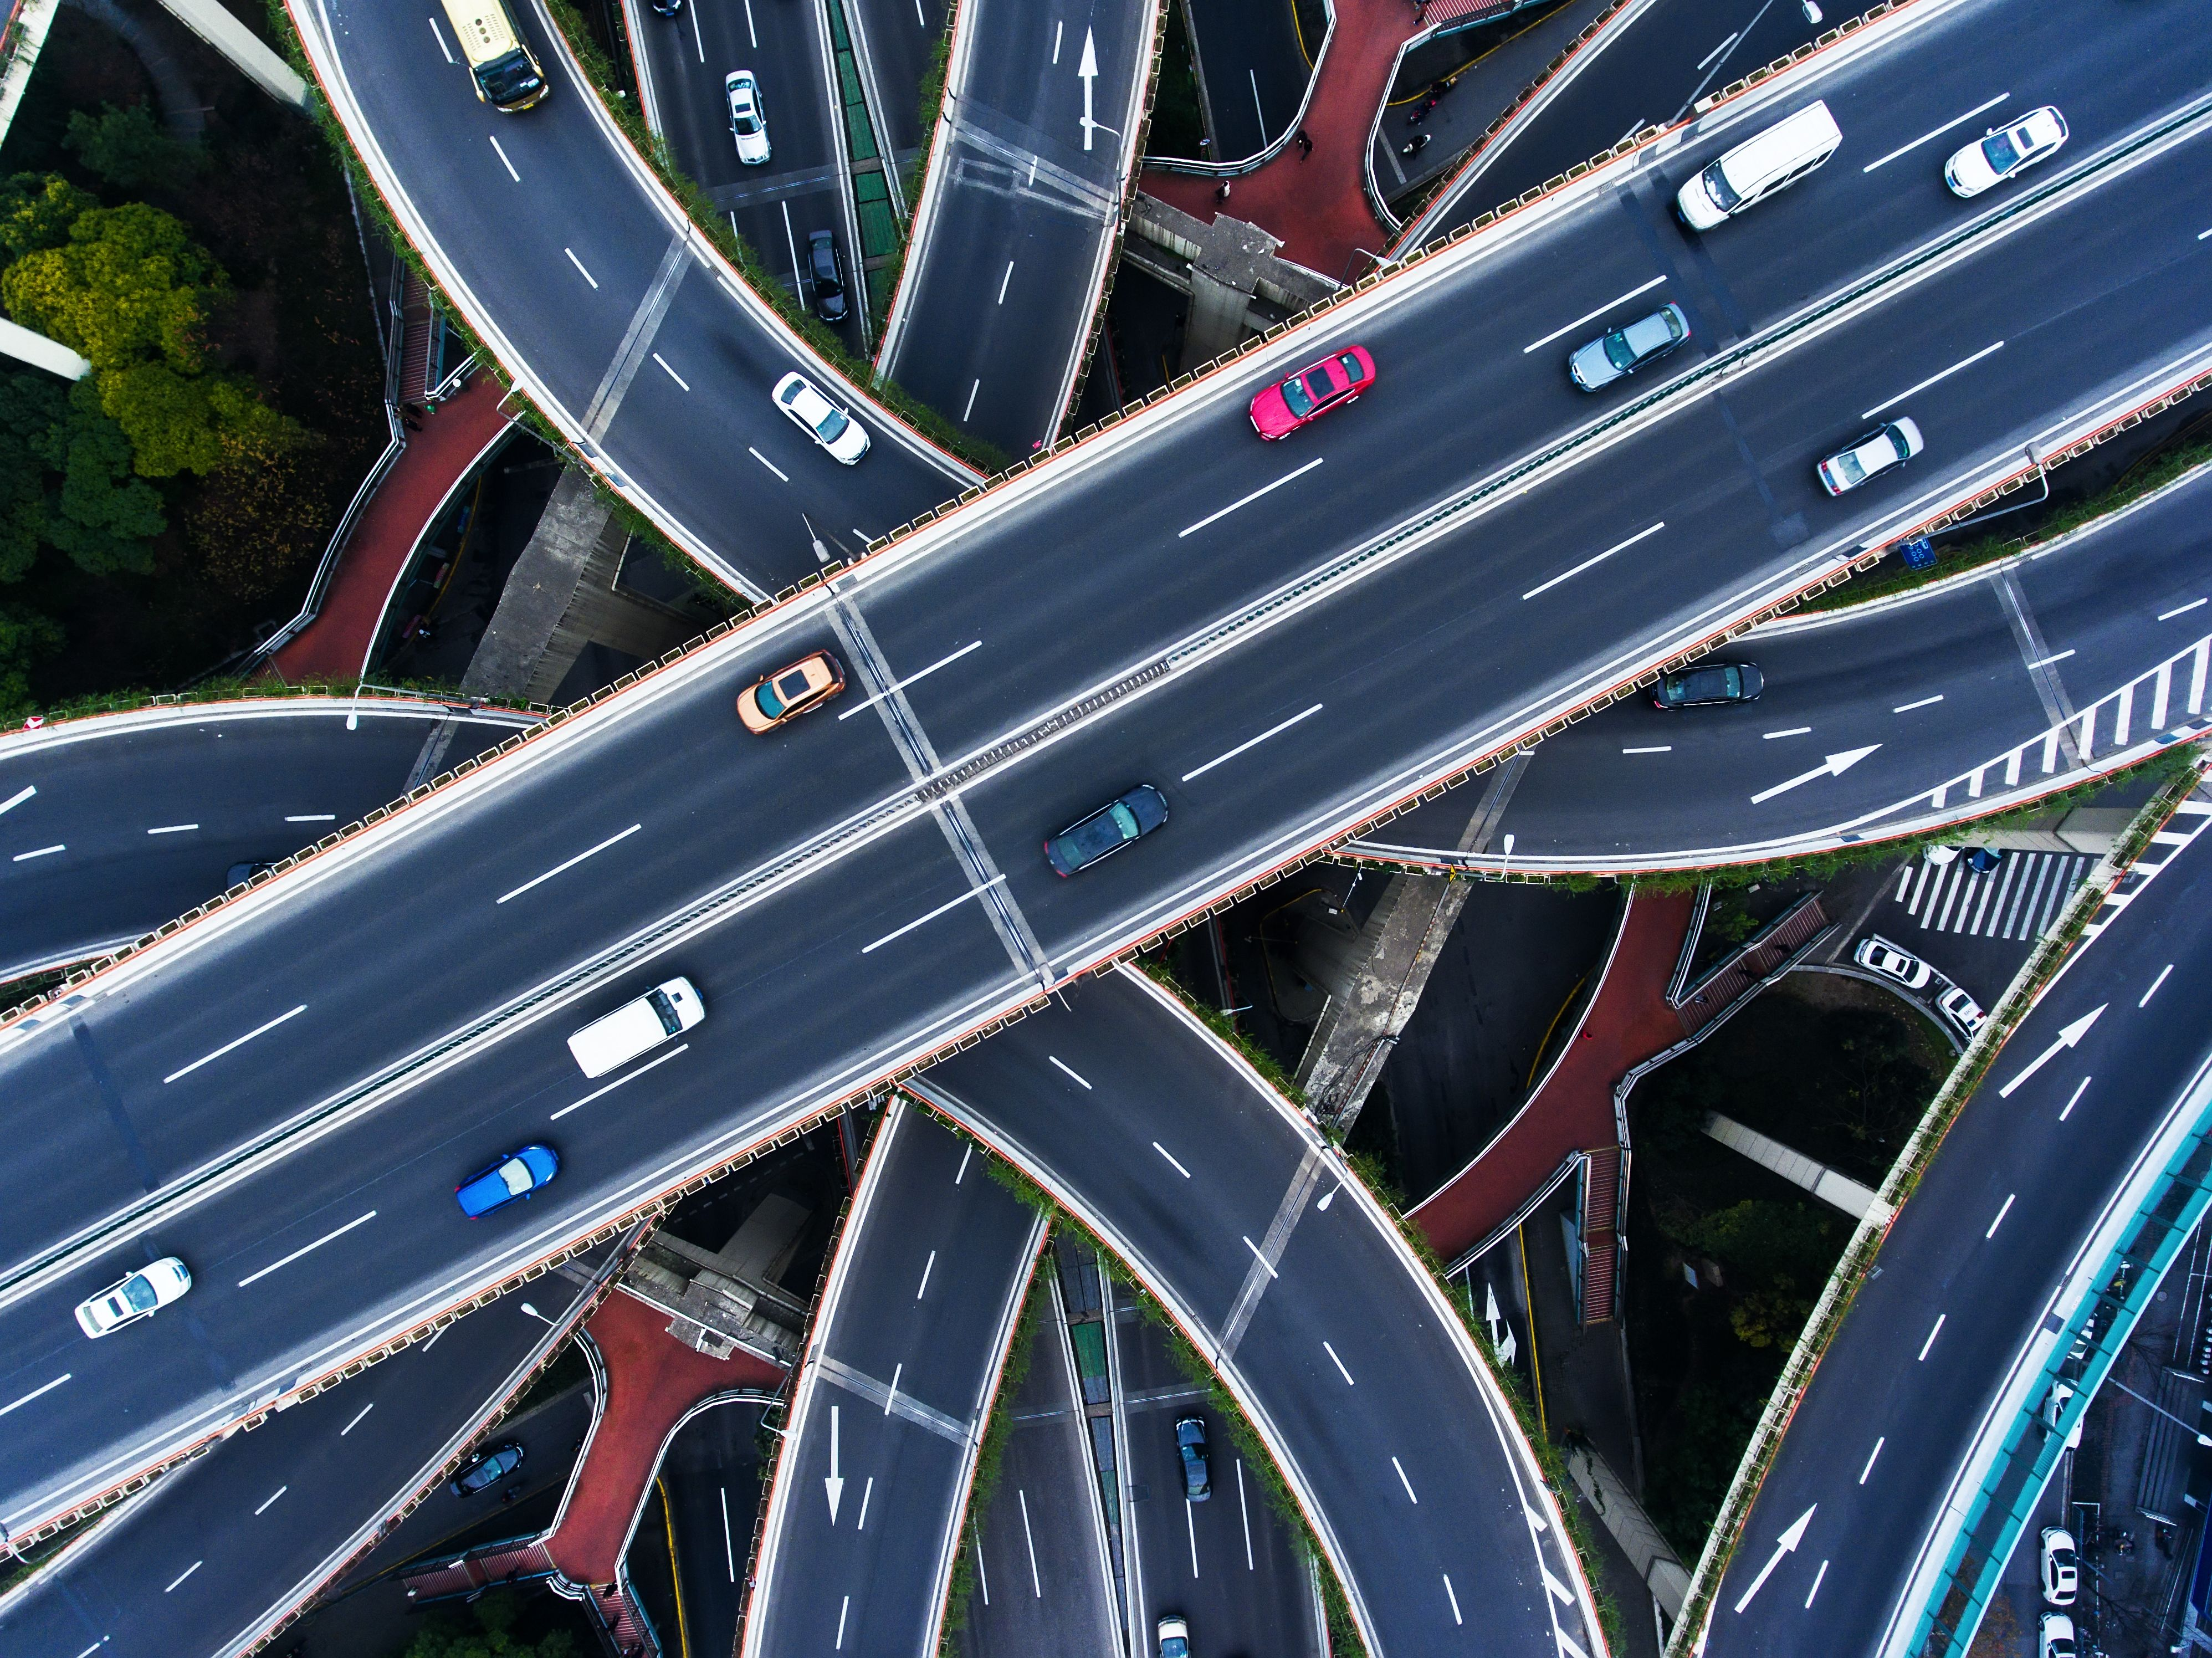 KPMG International identifies the emerging trends for infrastructure in 2019